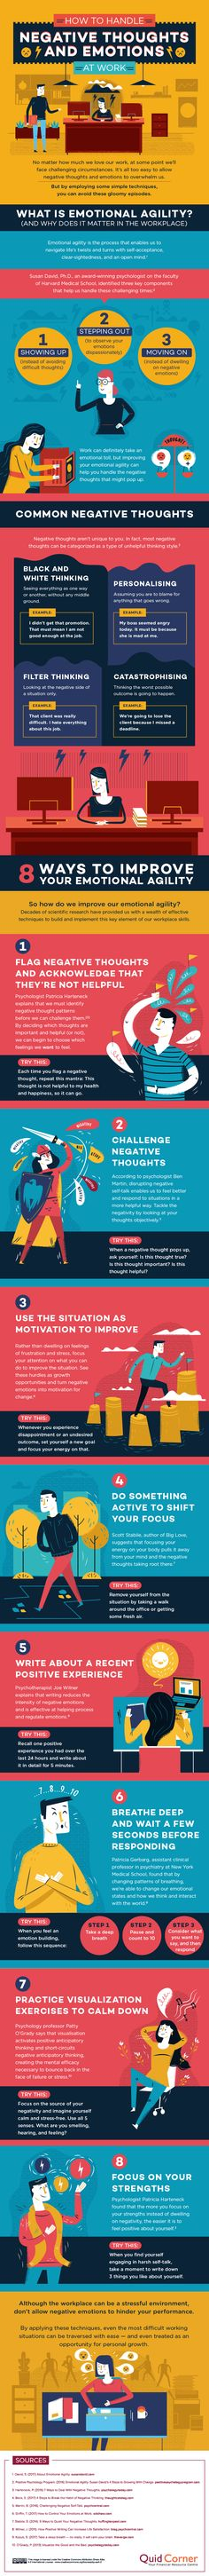 How to Handle Negative Thoughts and Emotions at Work - #infographic